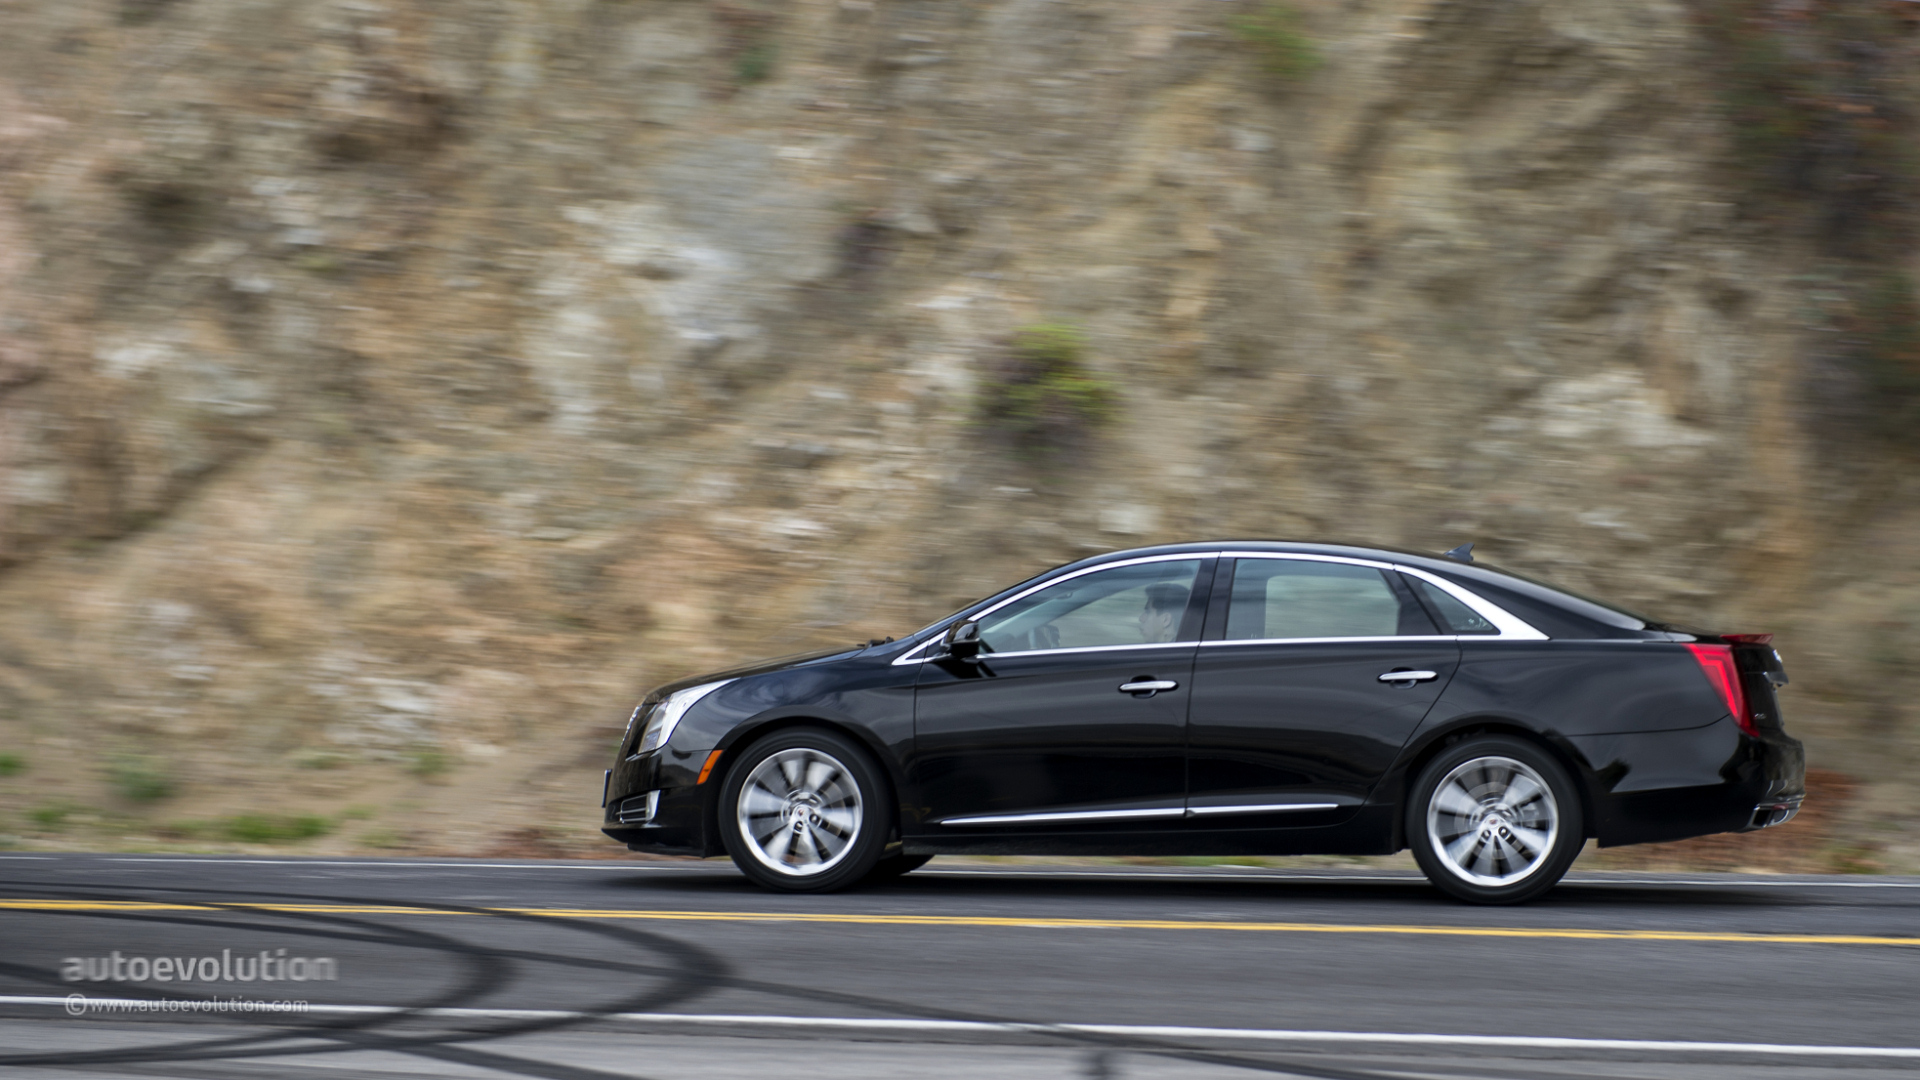 now news with cadillac bhp offered twin xts liter engine turbo